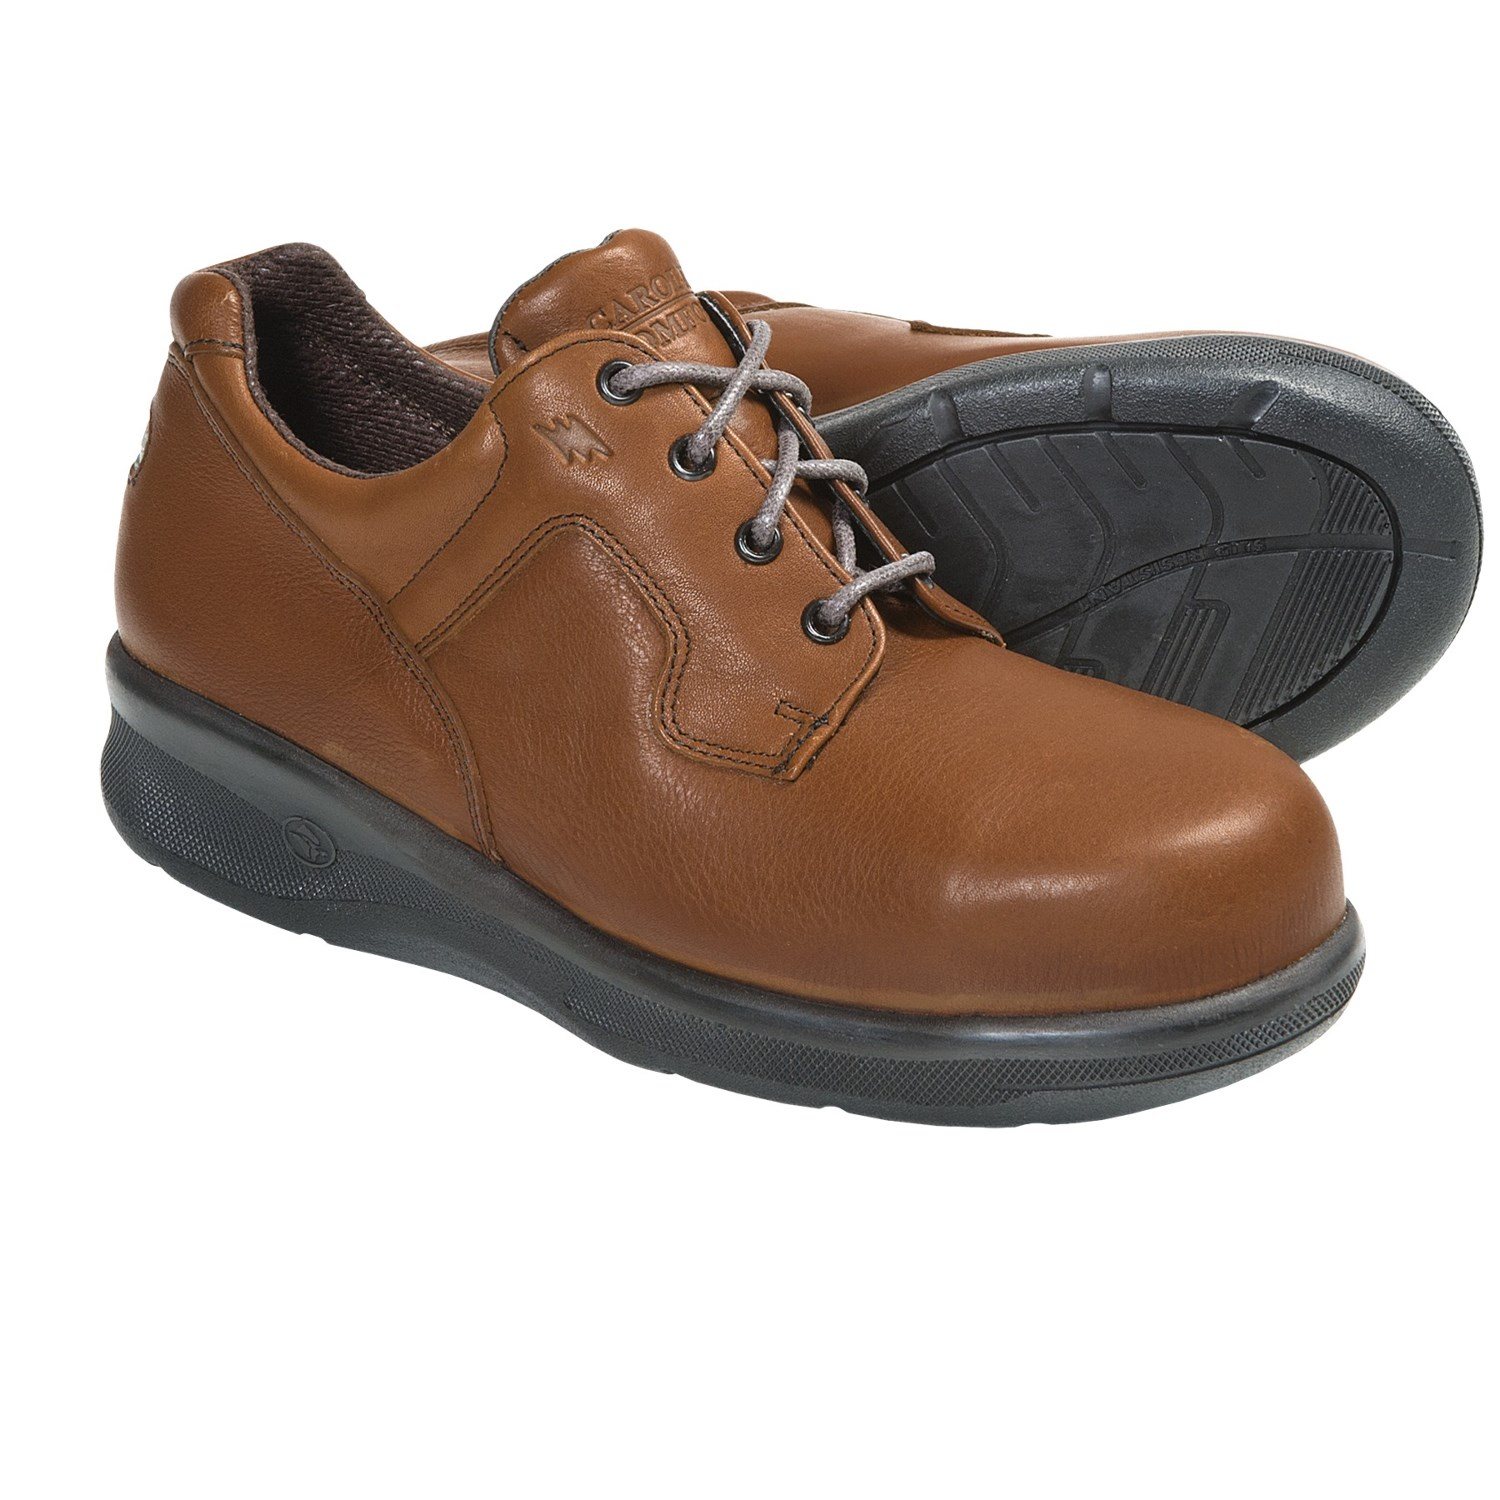 carolina shoe oxford work shoes steel toe leather for